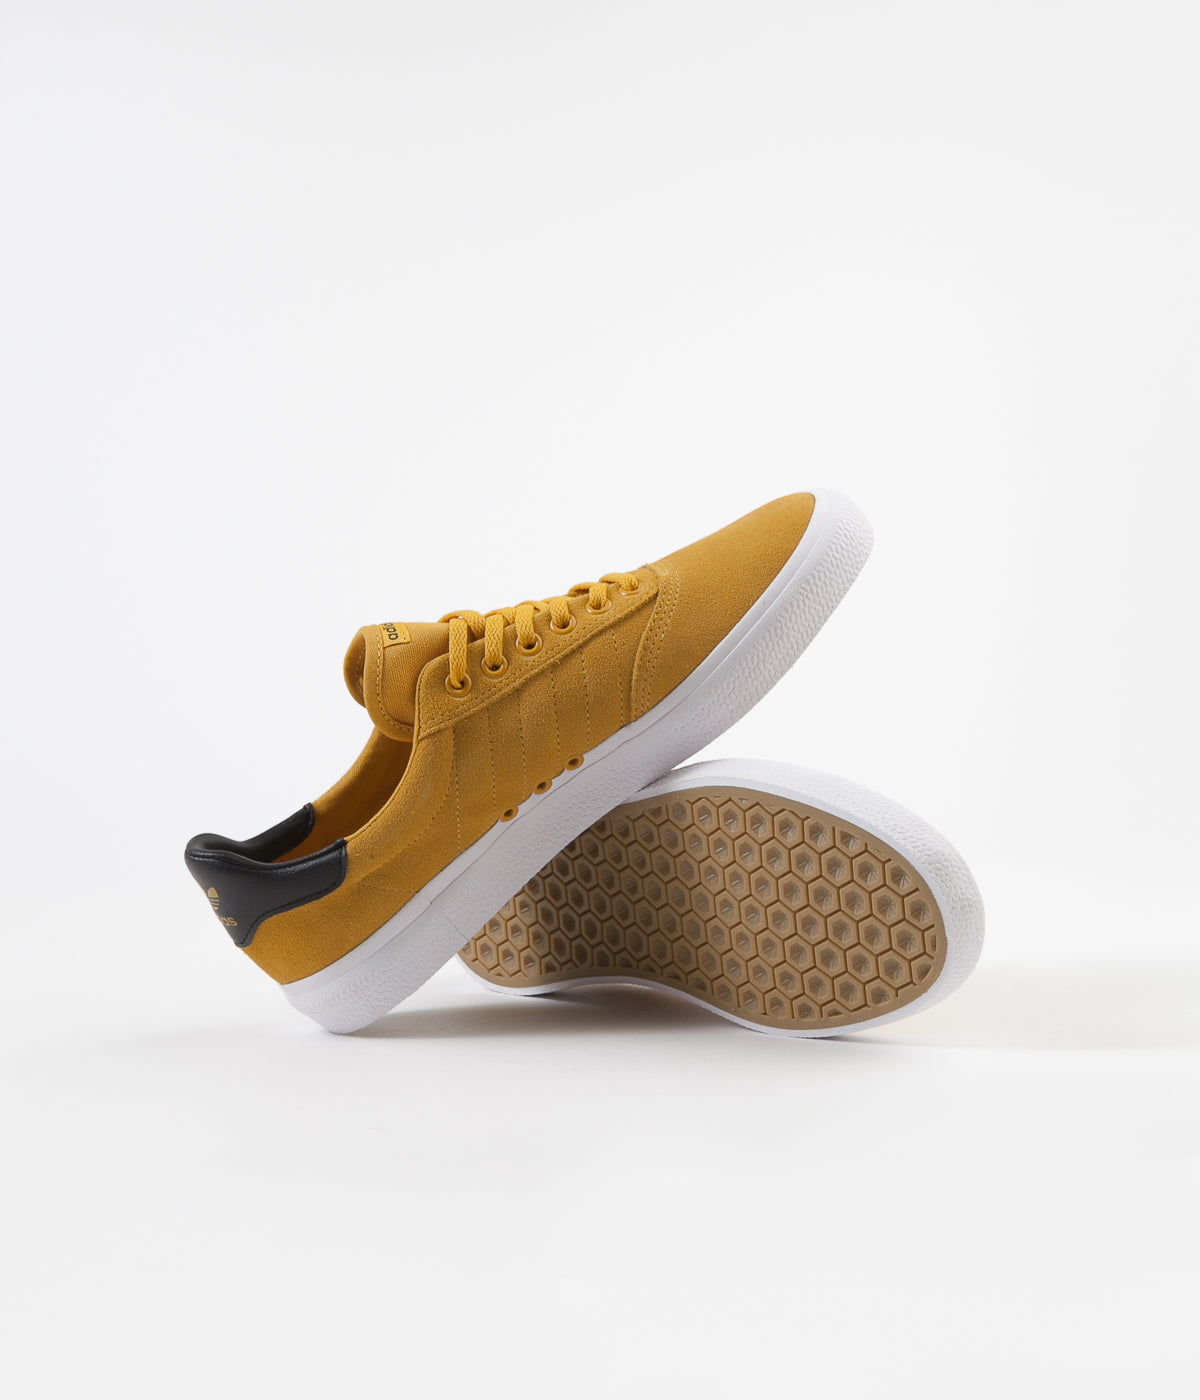 Adidas 3MC Shoes - Tactile Yellow / Core Black / White